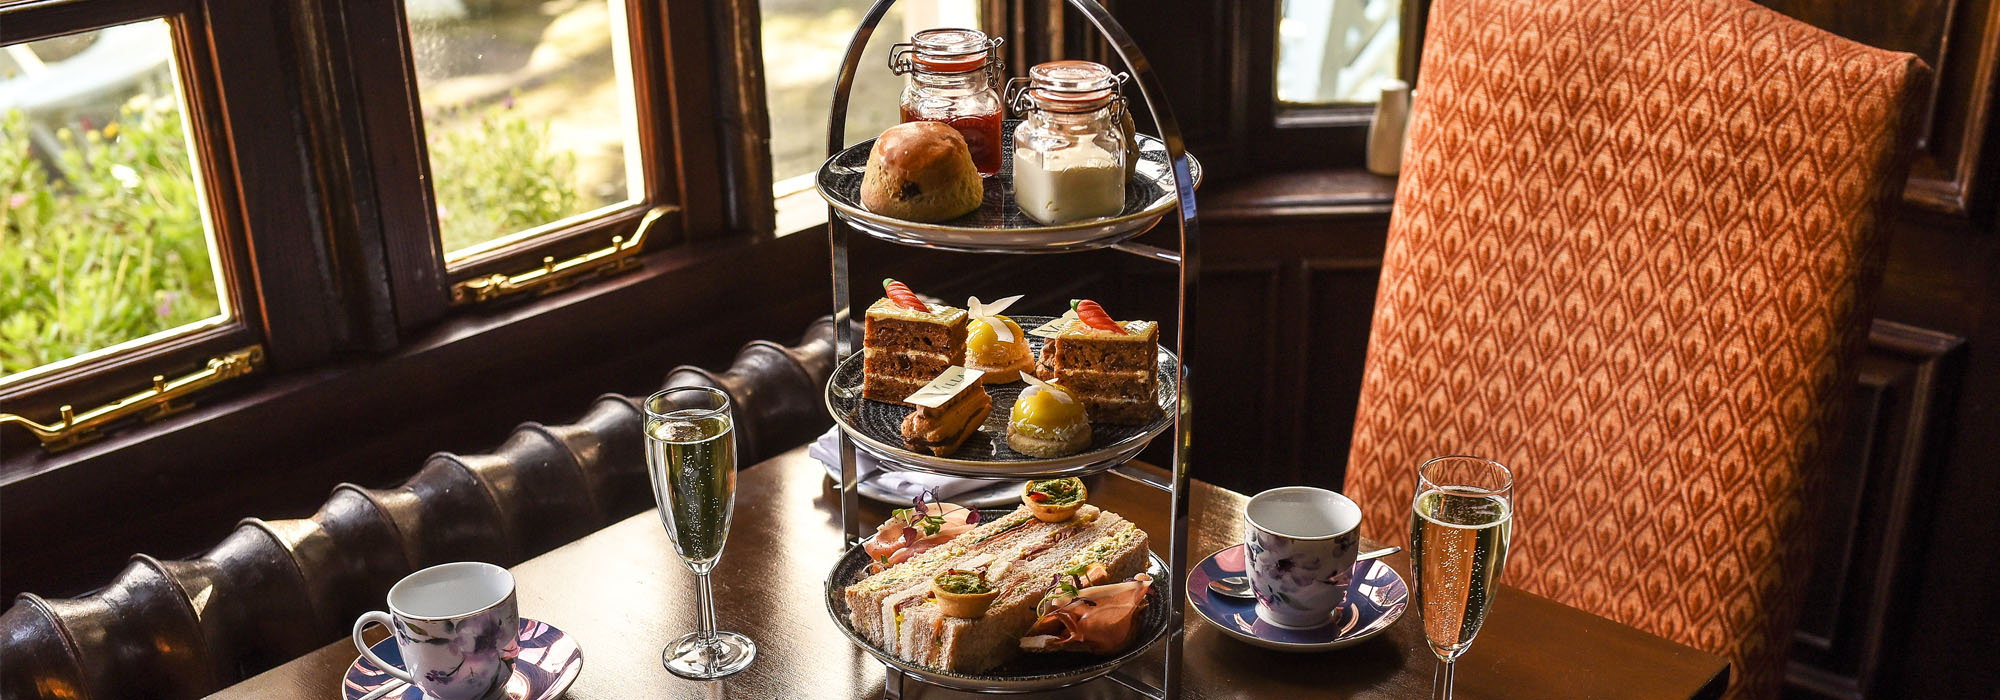 Afternoon Tea in Lancashire near me